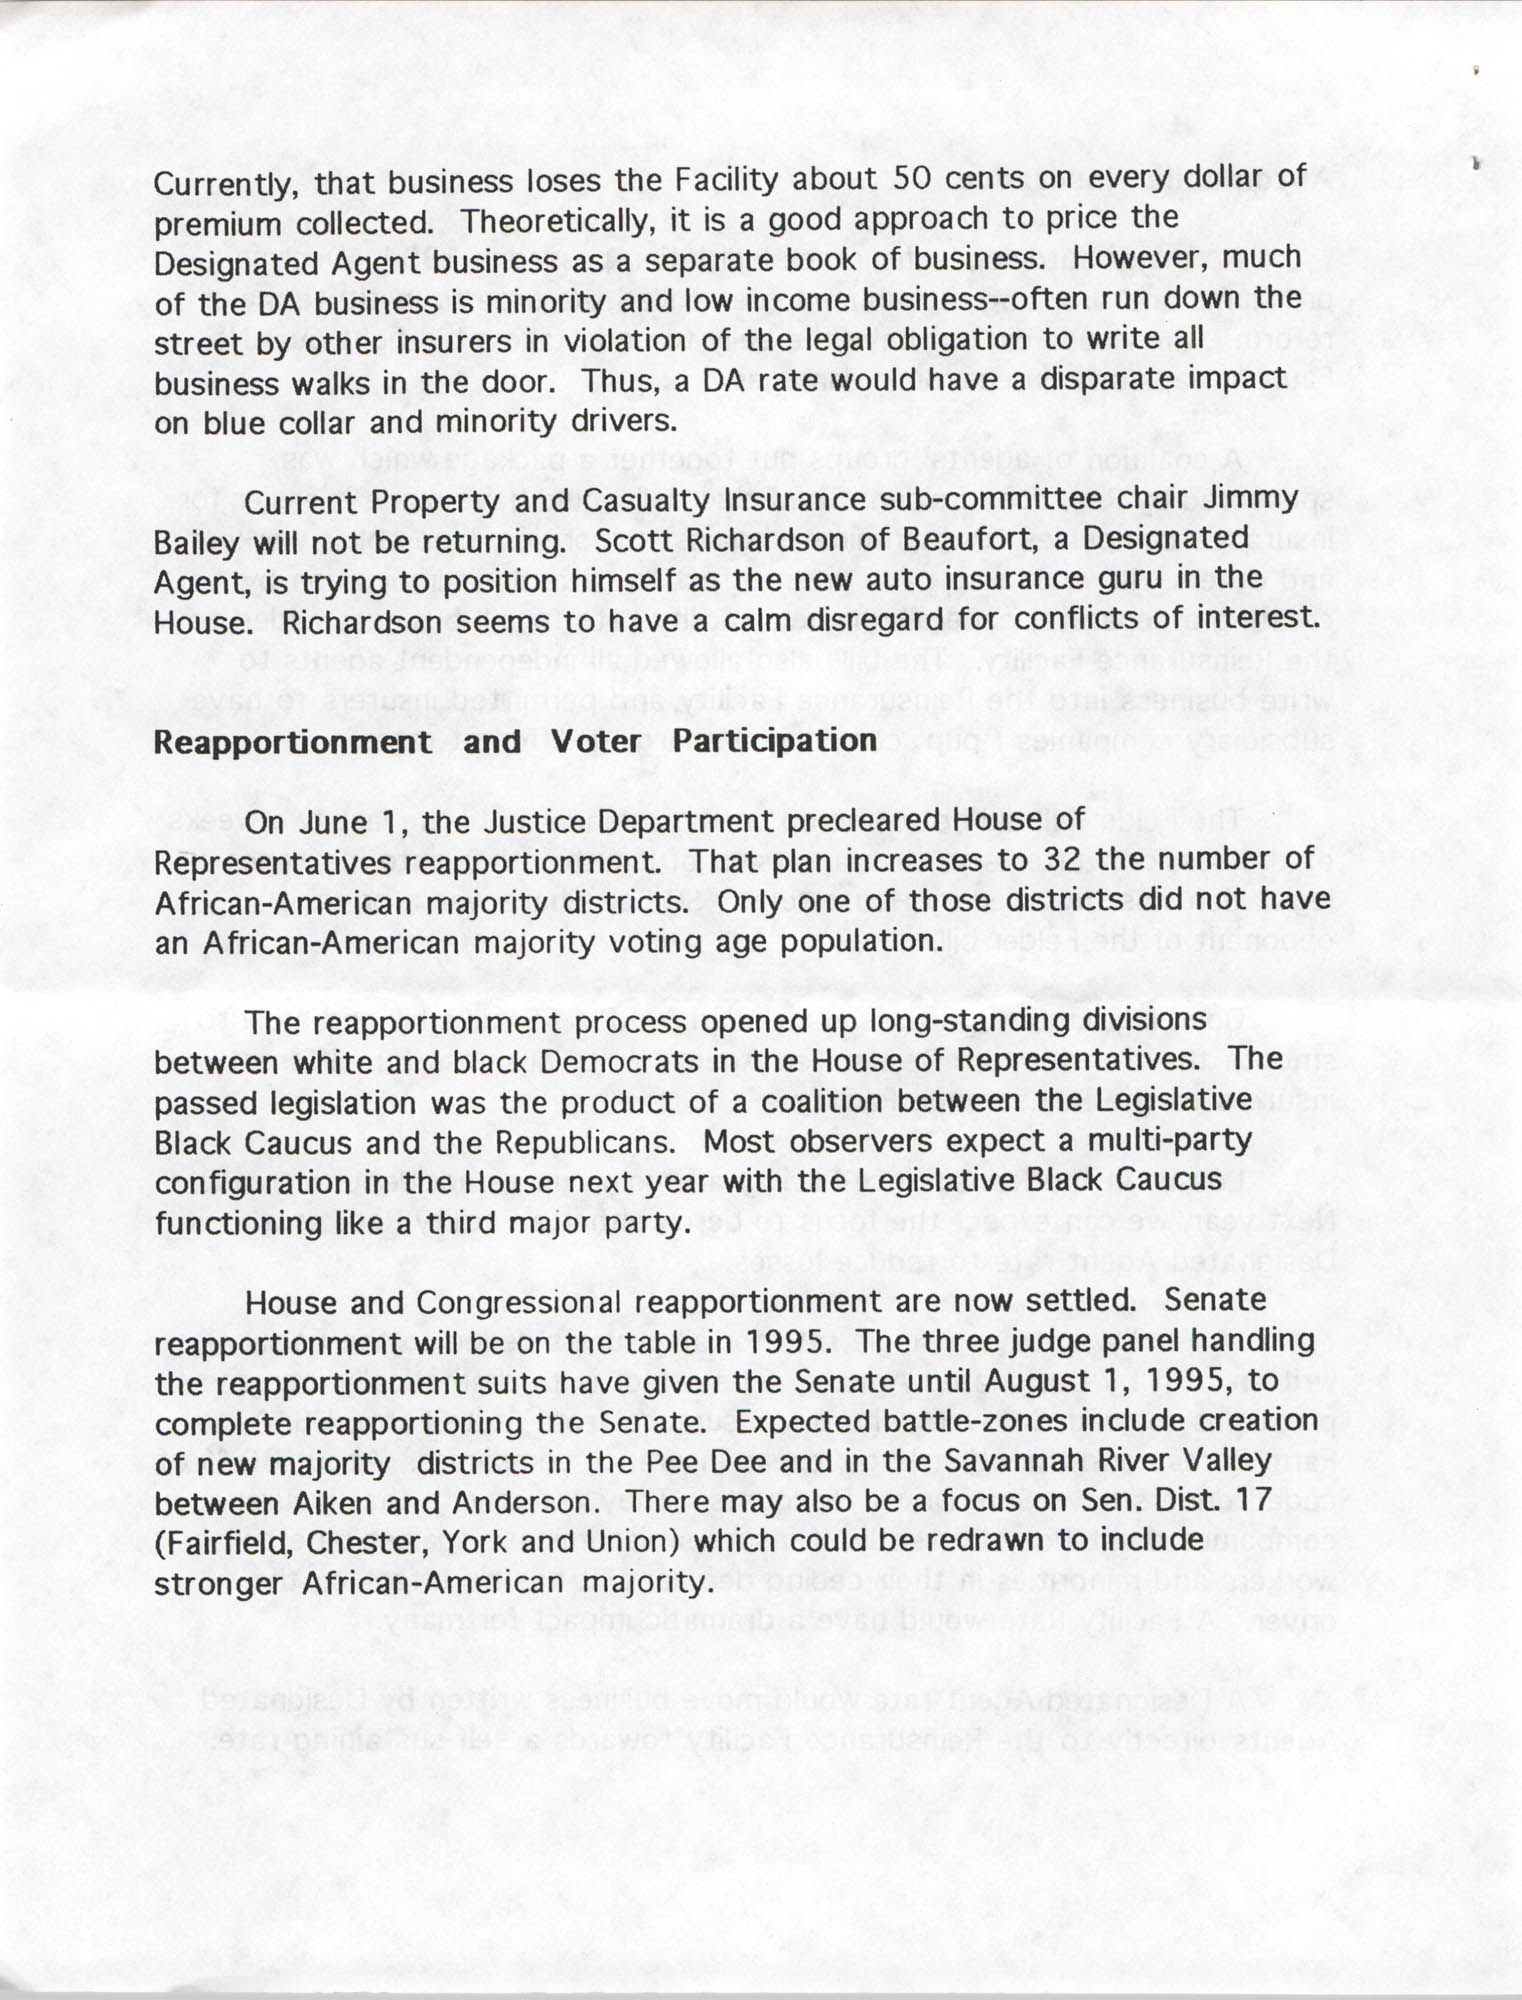 South Carolina Fair Share Legislative Update, June 30, 1994, Page 8